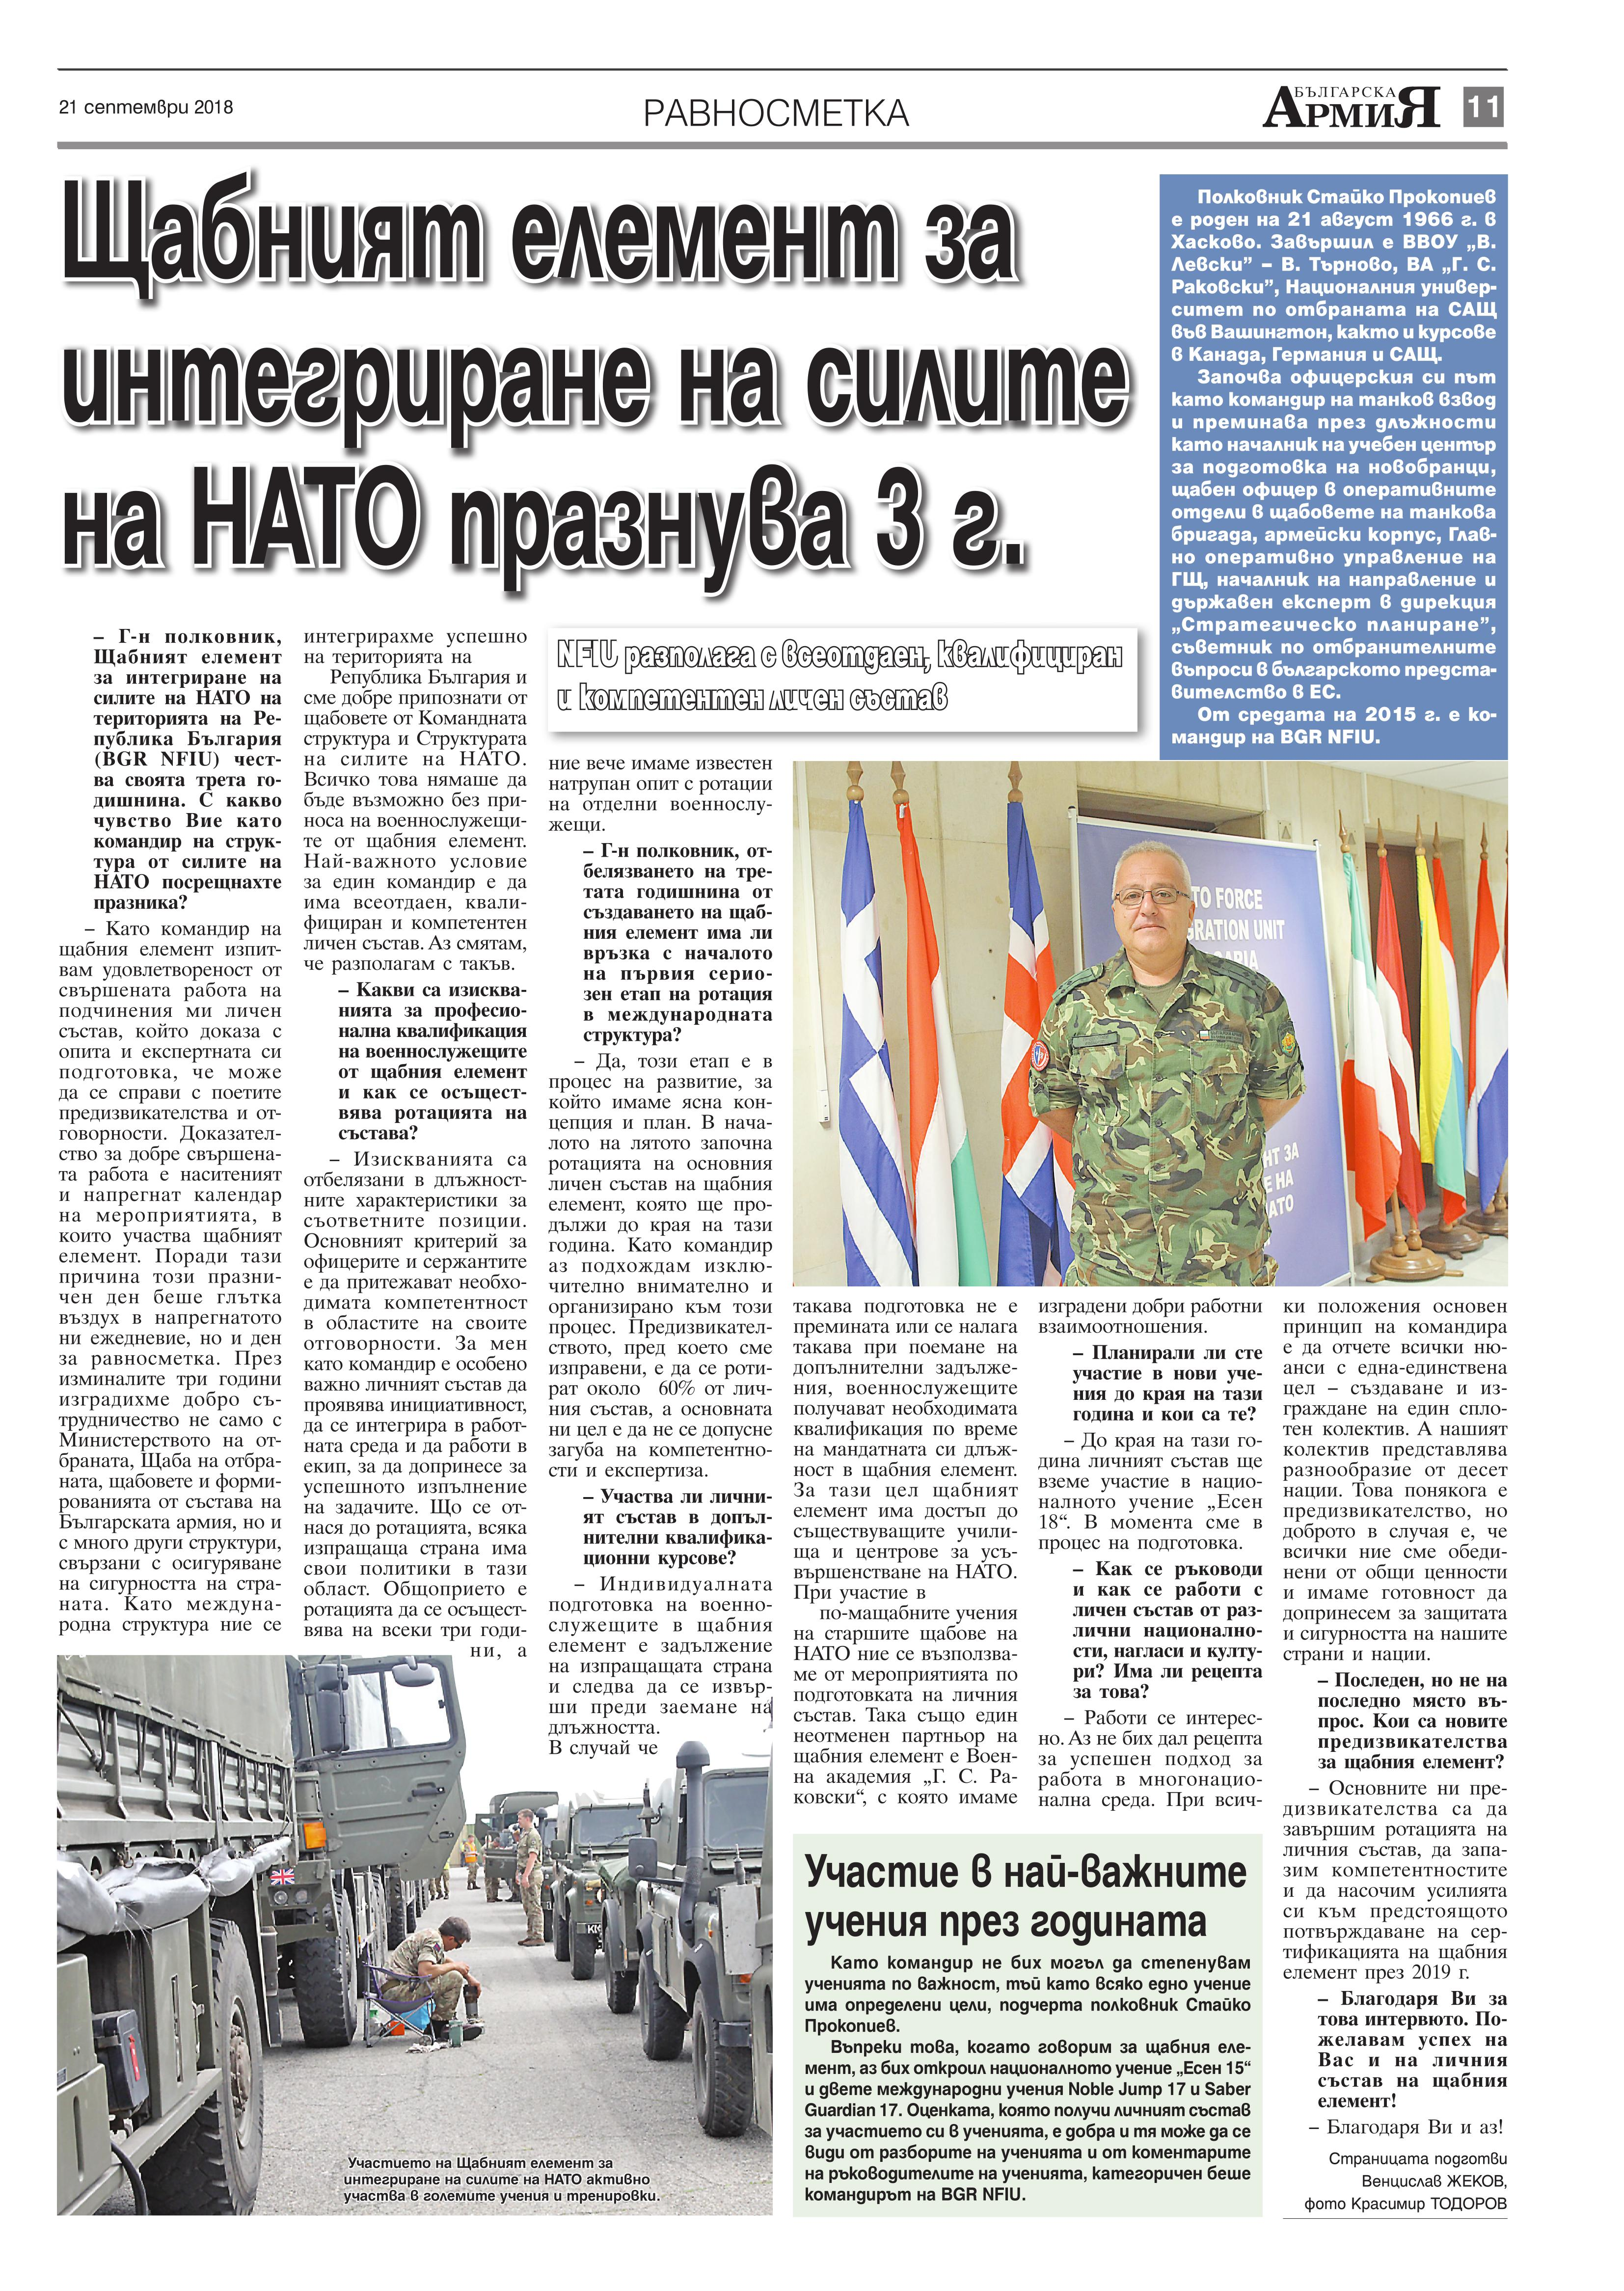 https://armymedia.bg/wp-content/uploads/2015/06/11.page1_-66.jpg